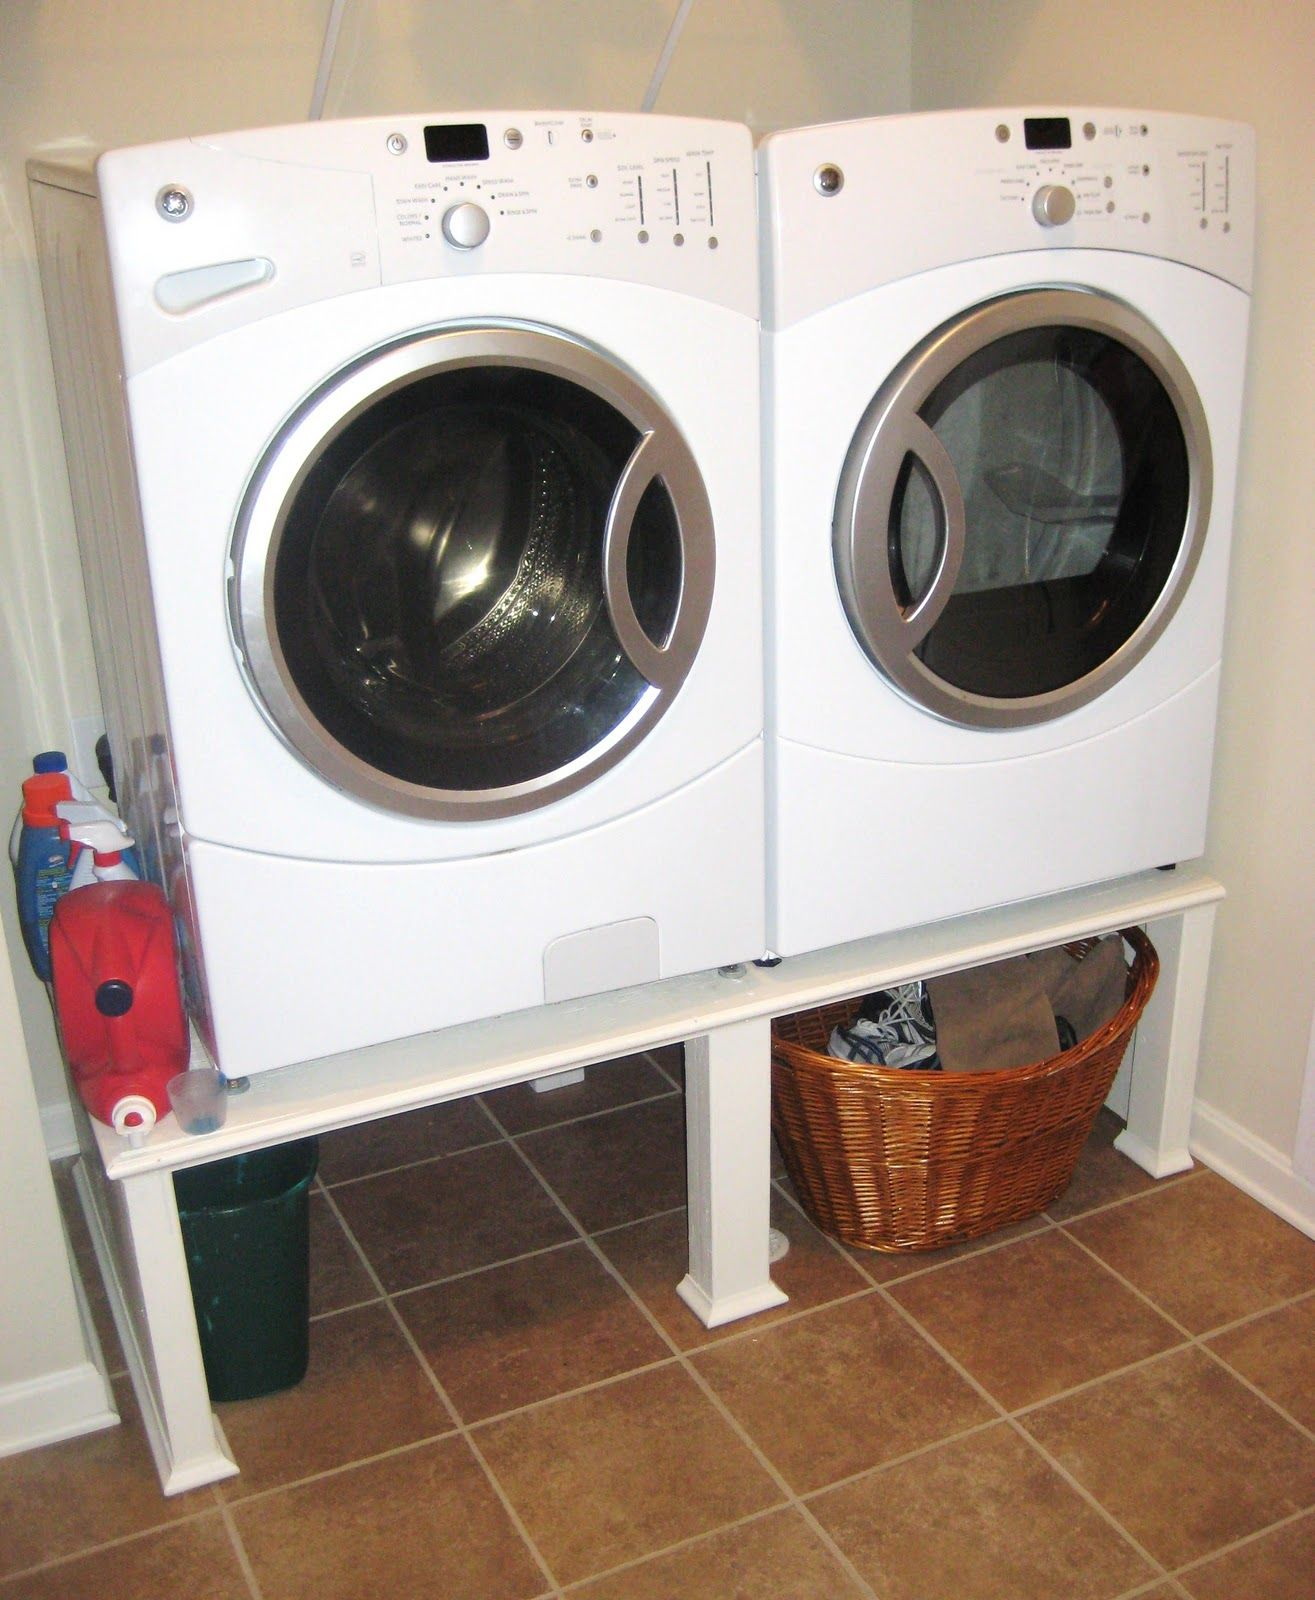 Washer Dryer Stand Washer And Dryer Stand Dryer Stand Washer